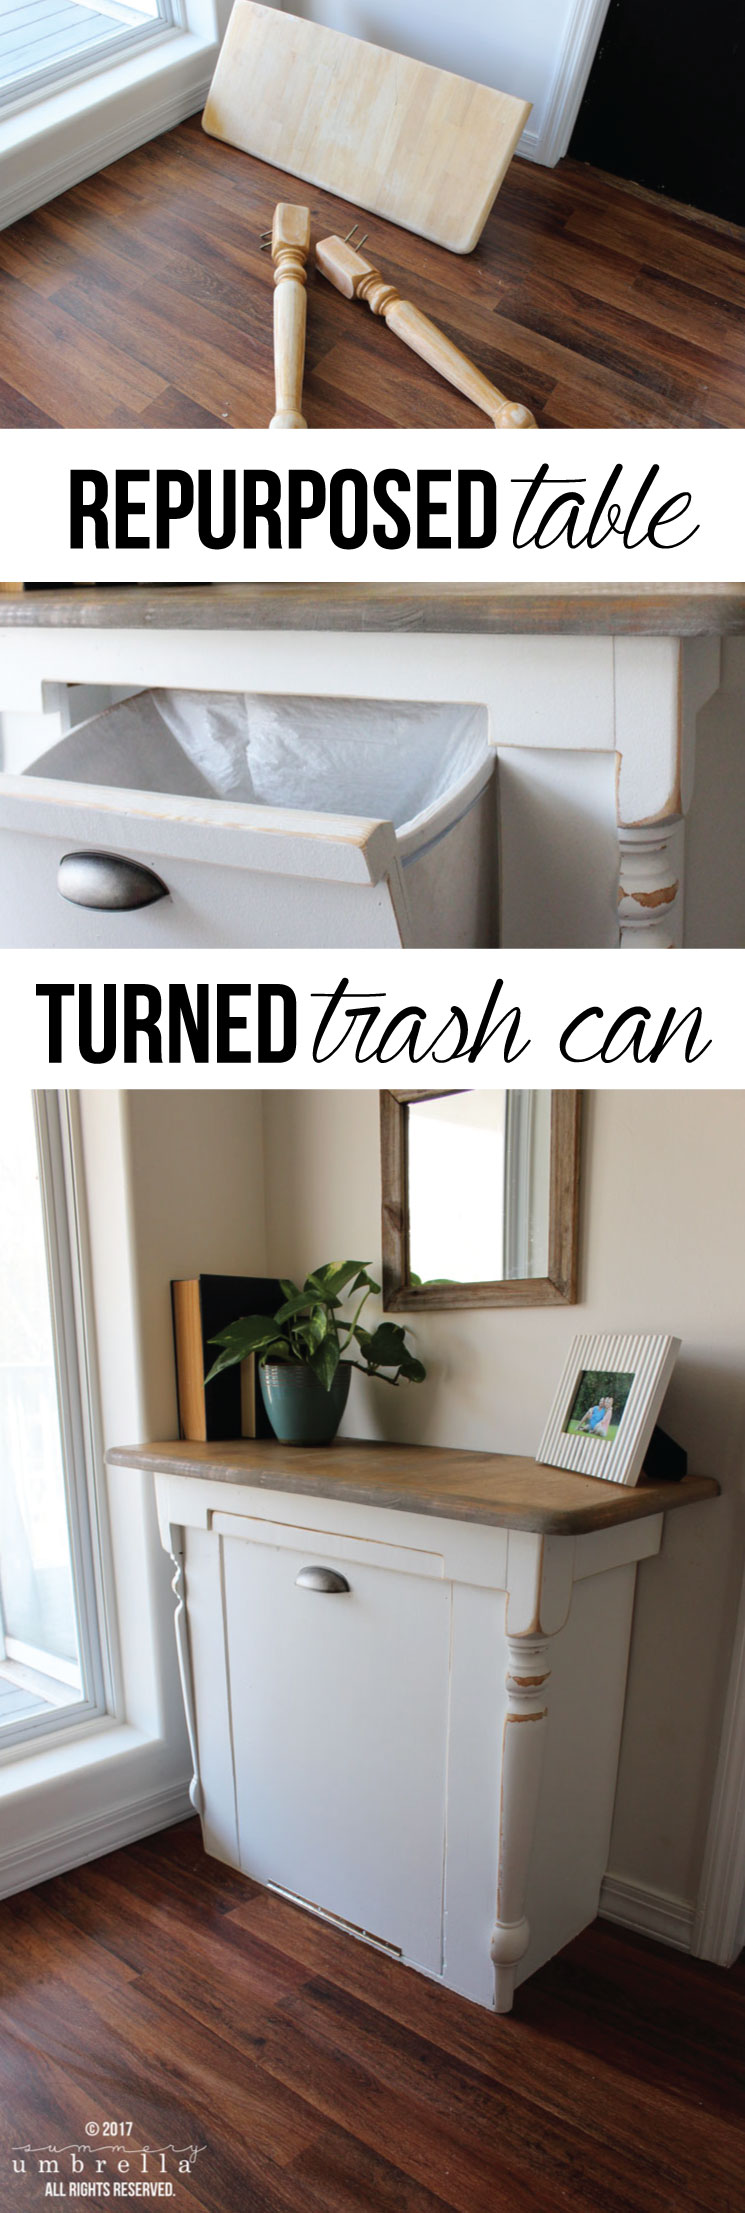 Inspiration is coming your way! Ever wondered what you could do with that old table you have lying around? Well, turn it into a wood tilt out trash can!